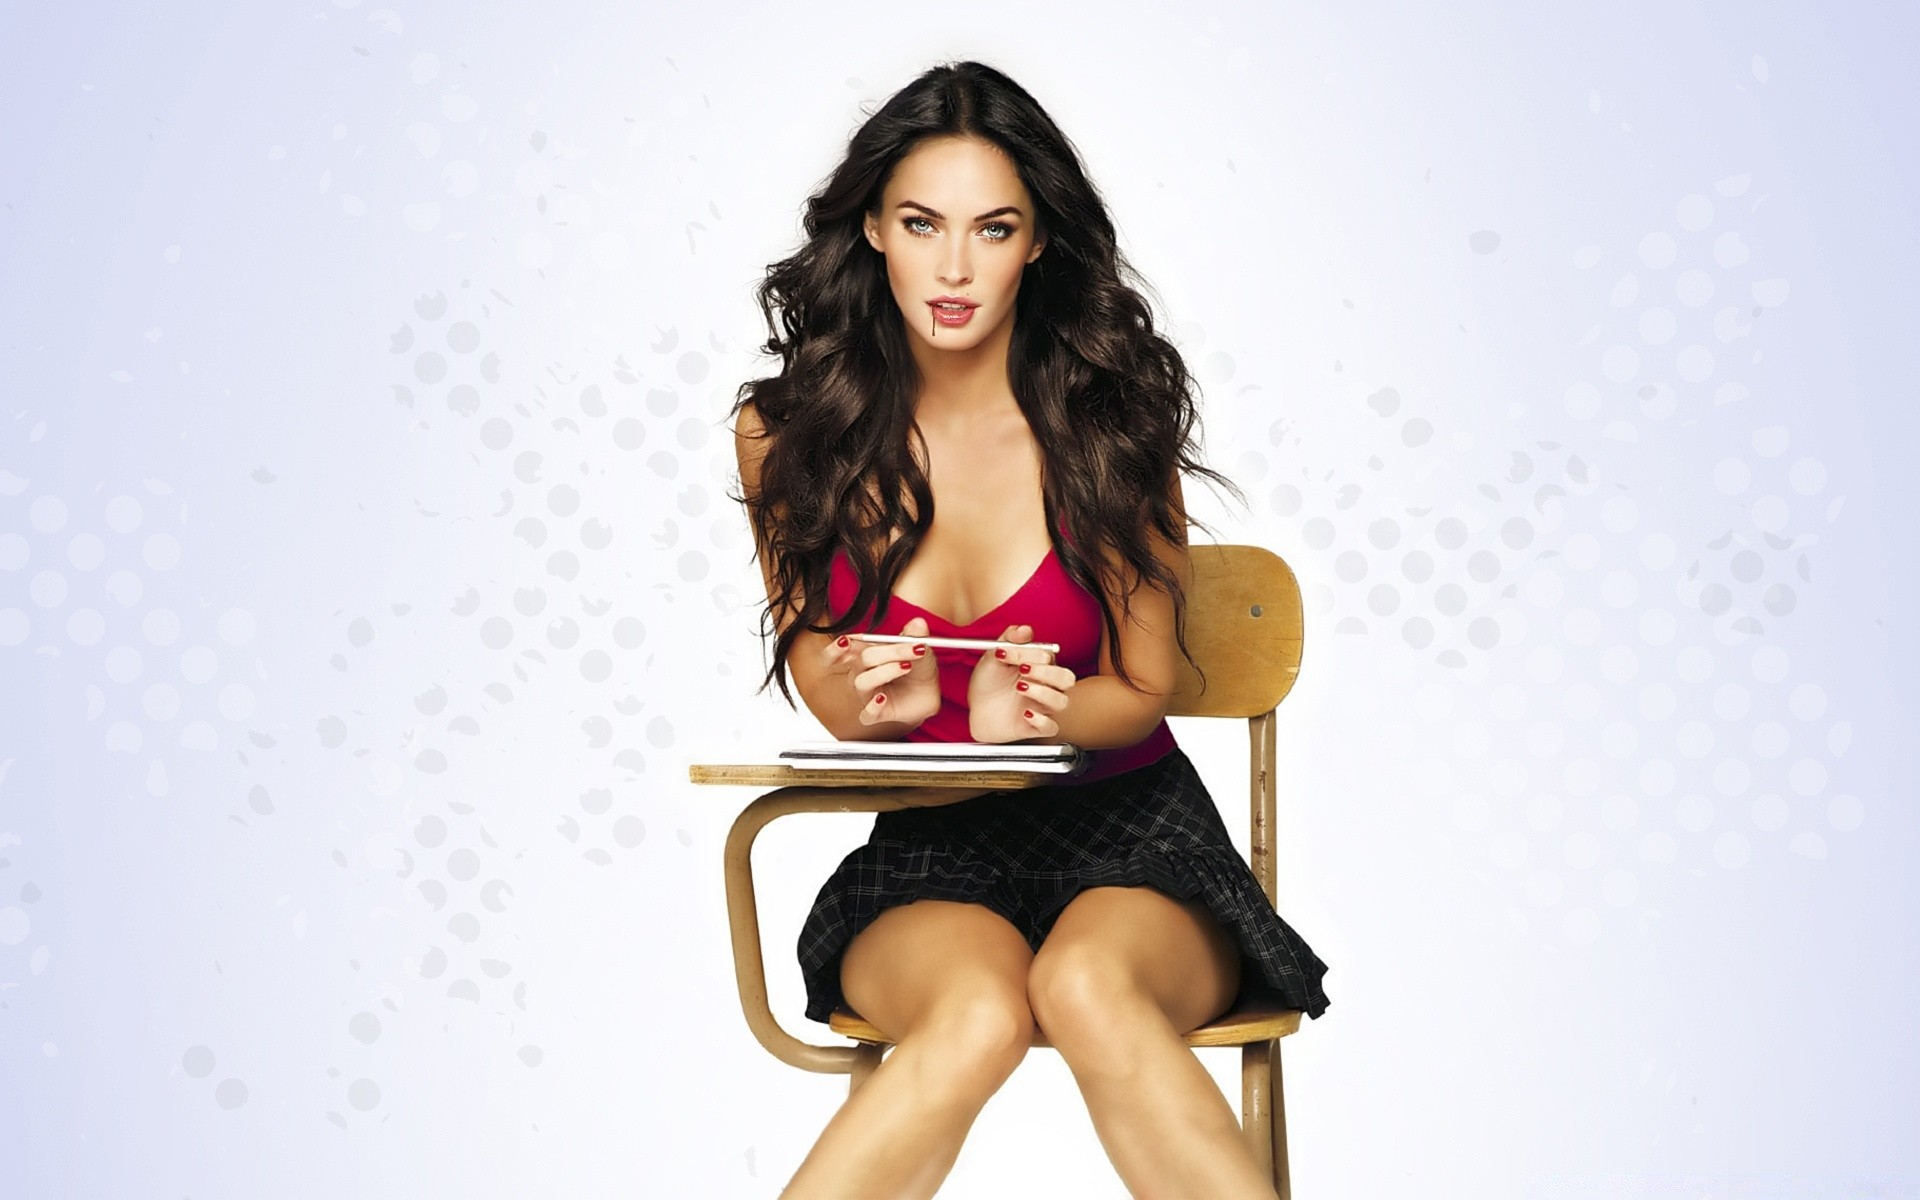 Megan fox every girl video, thainee teasing